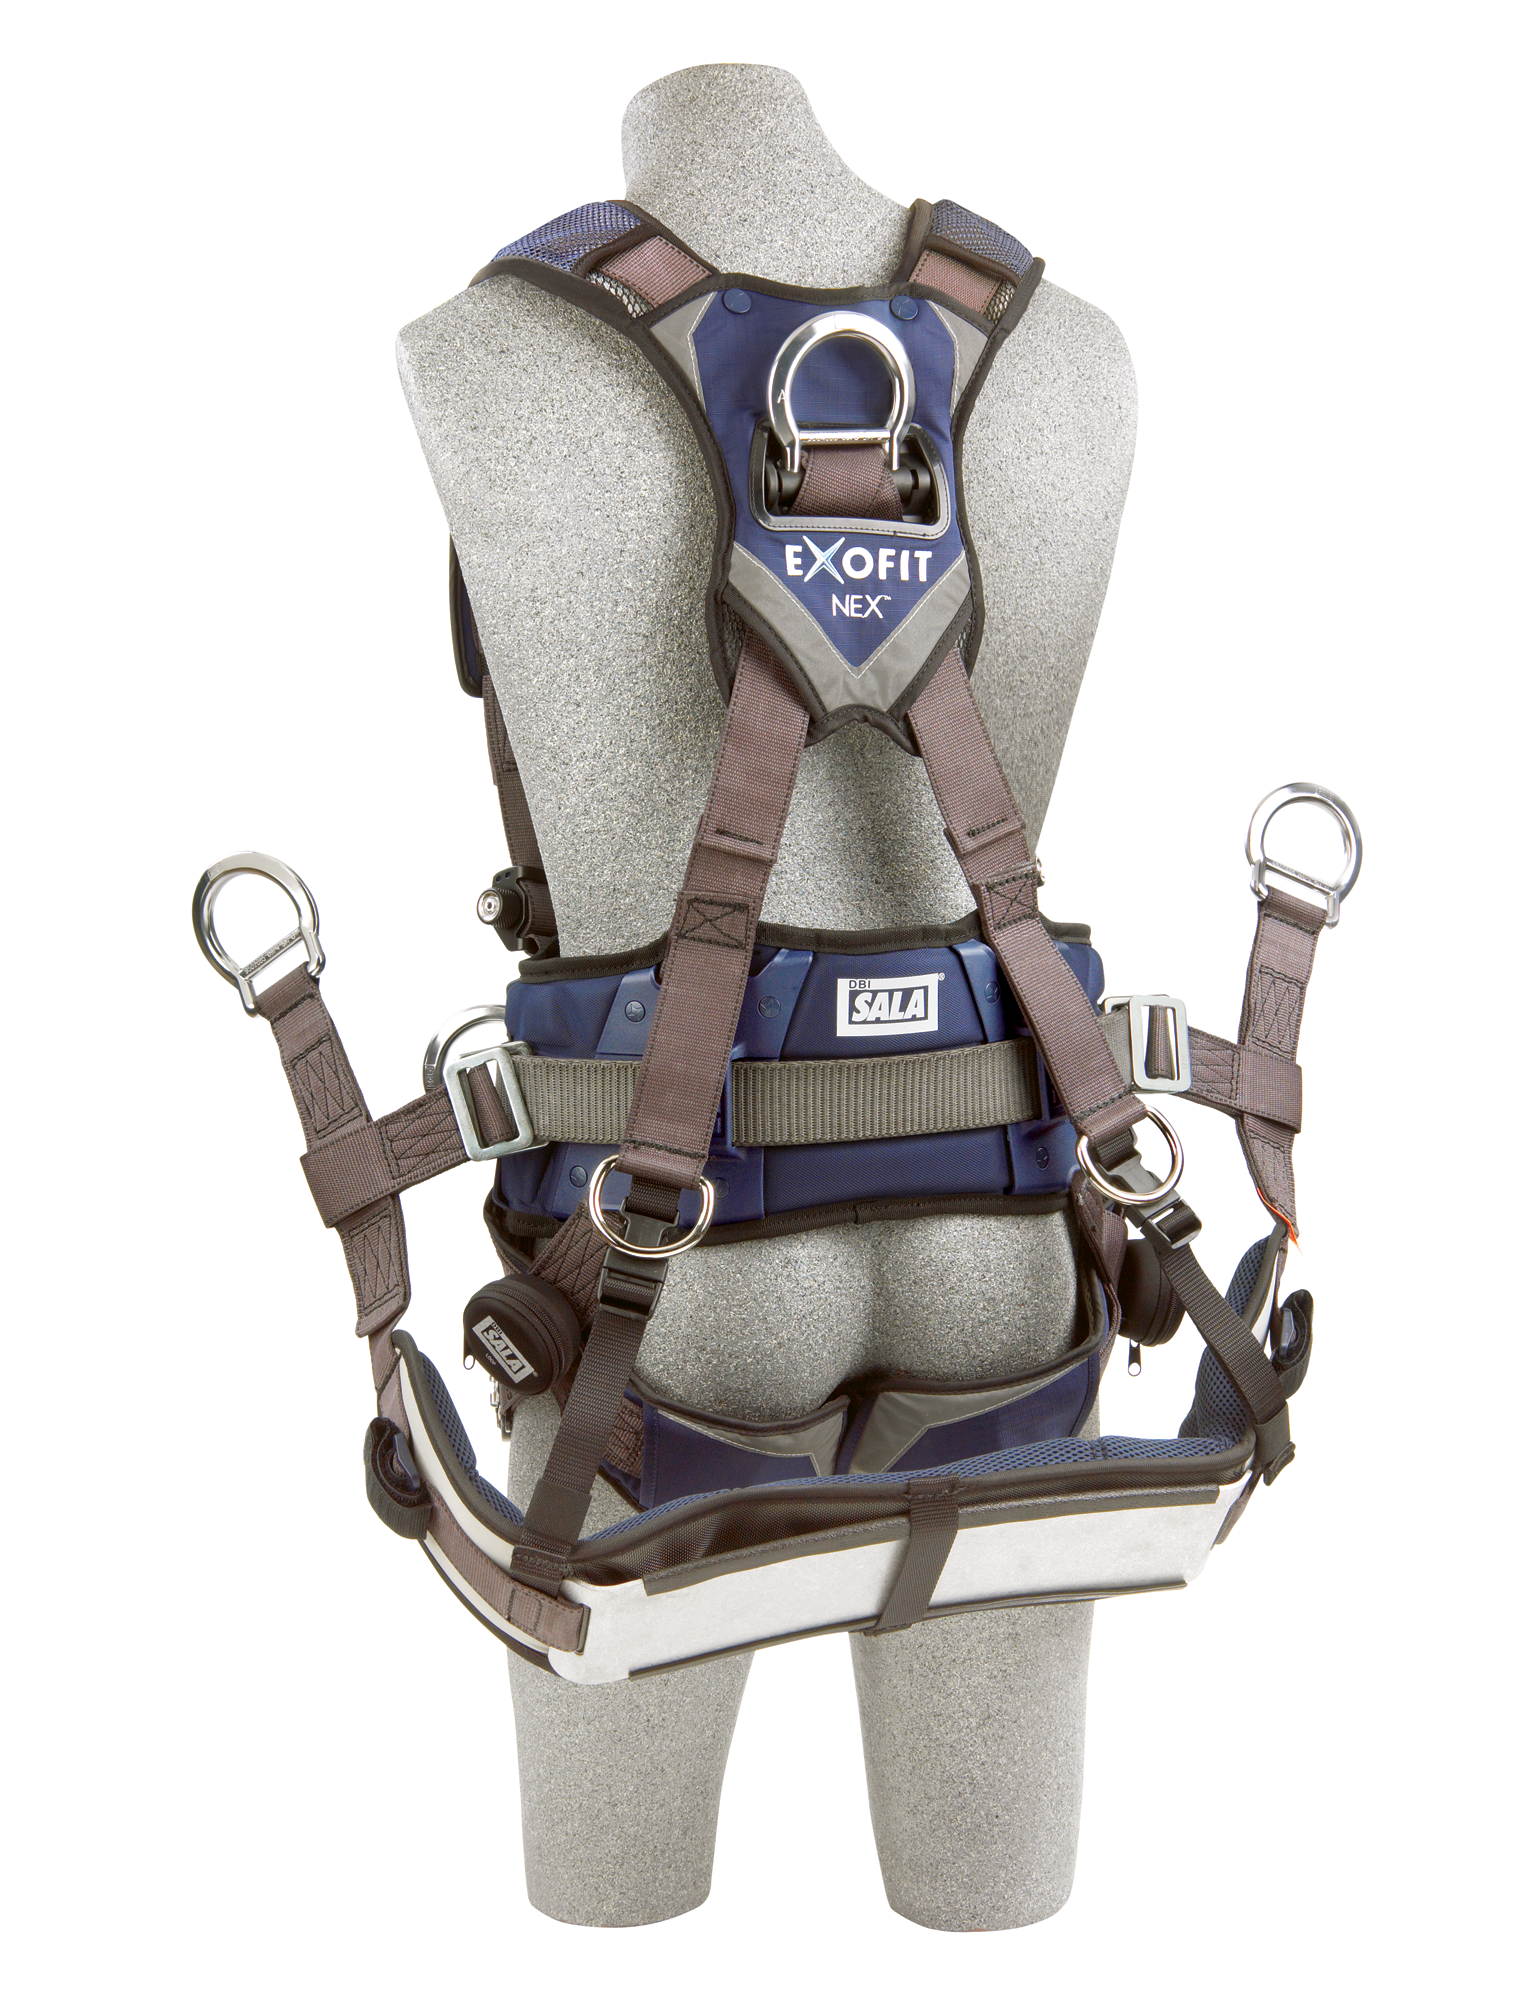 ExoFit NEX Tower Climbing Harness, Quick-Connect Chest and Legs, Chest and Side D-Rings, Back